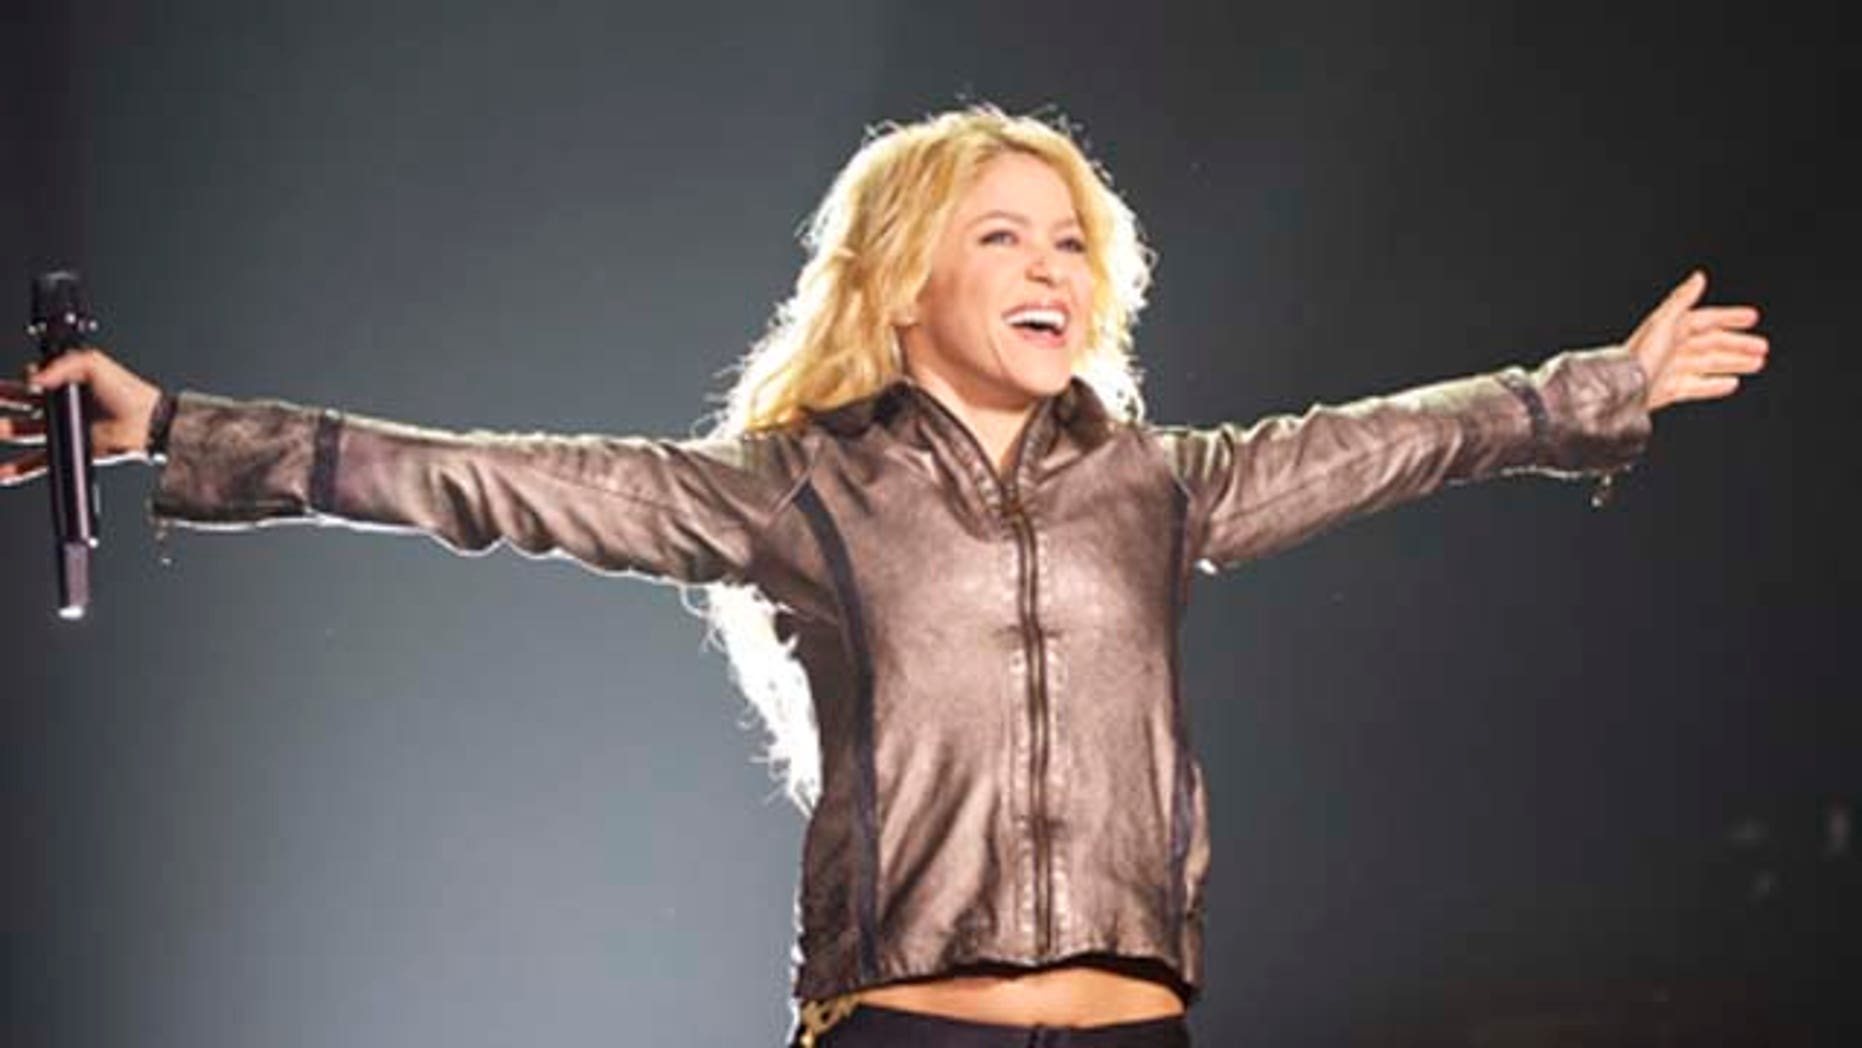 June 03, 2011: Singer Shakira performs on stage at the Vicente Calderón stadium in Madrid, Spain.